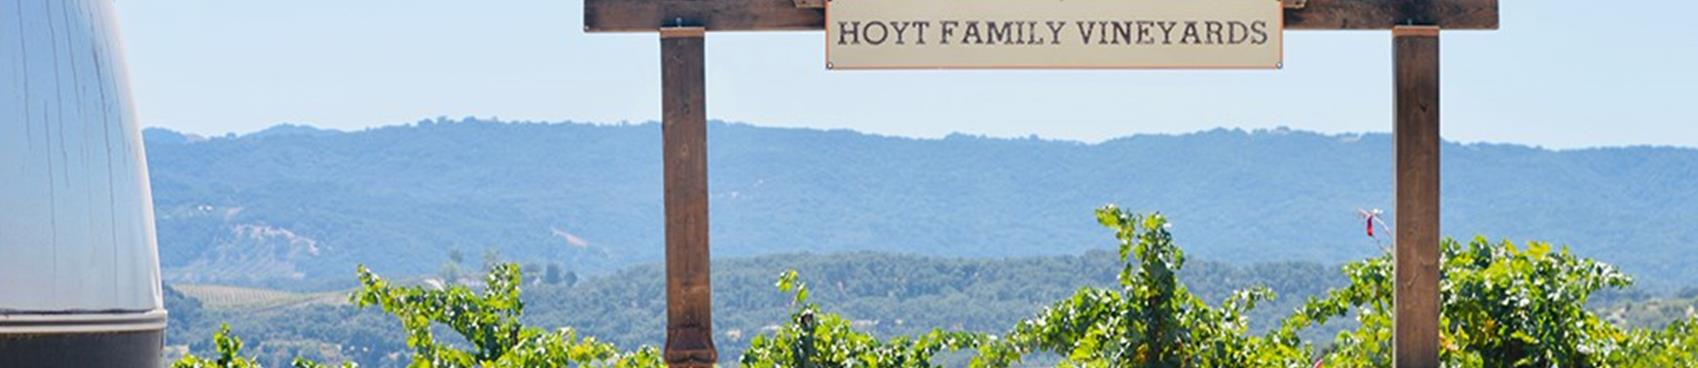 A image of Hoyt Family Vineyards